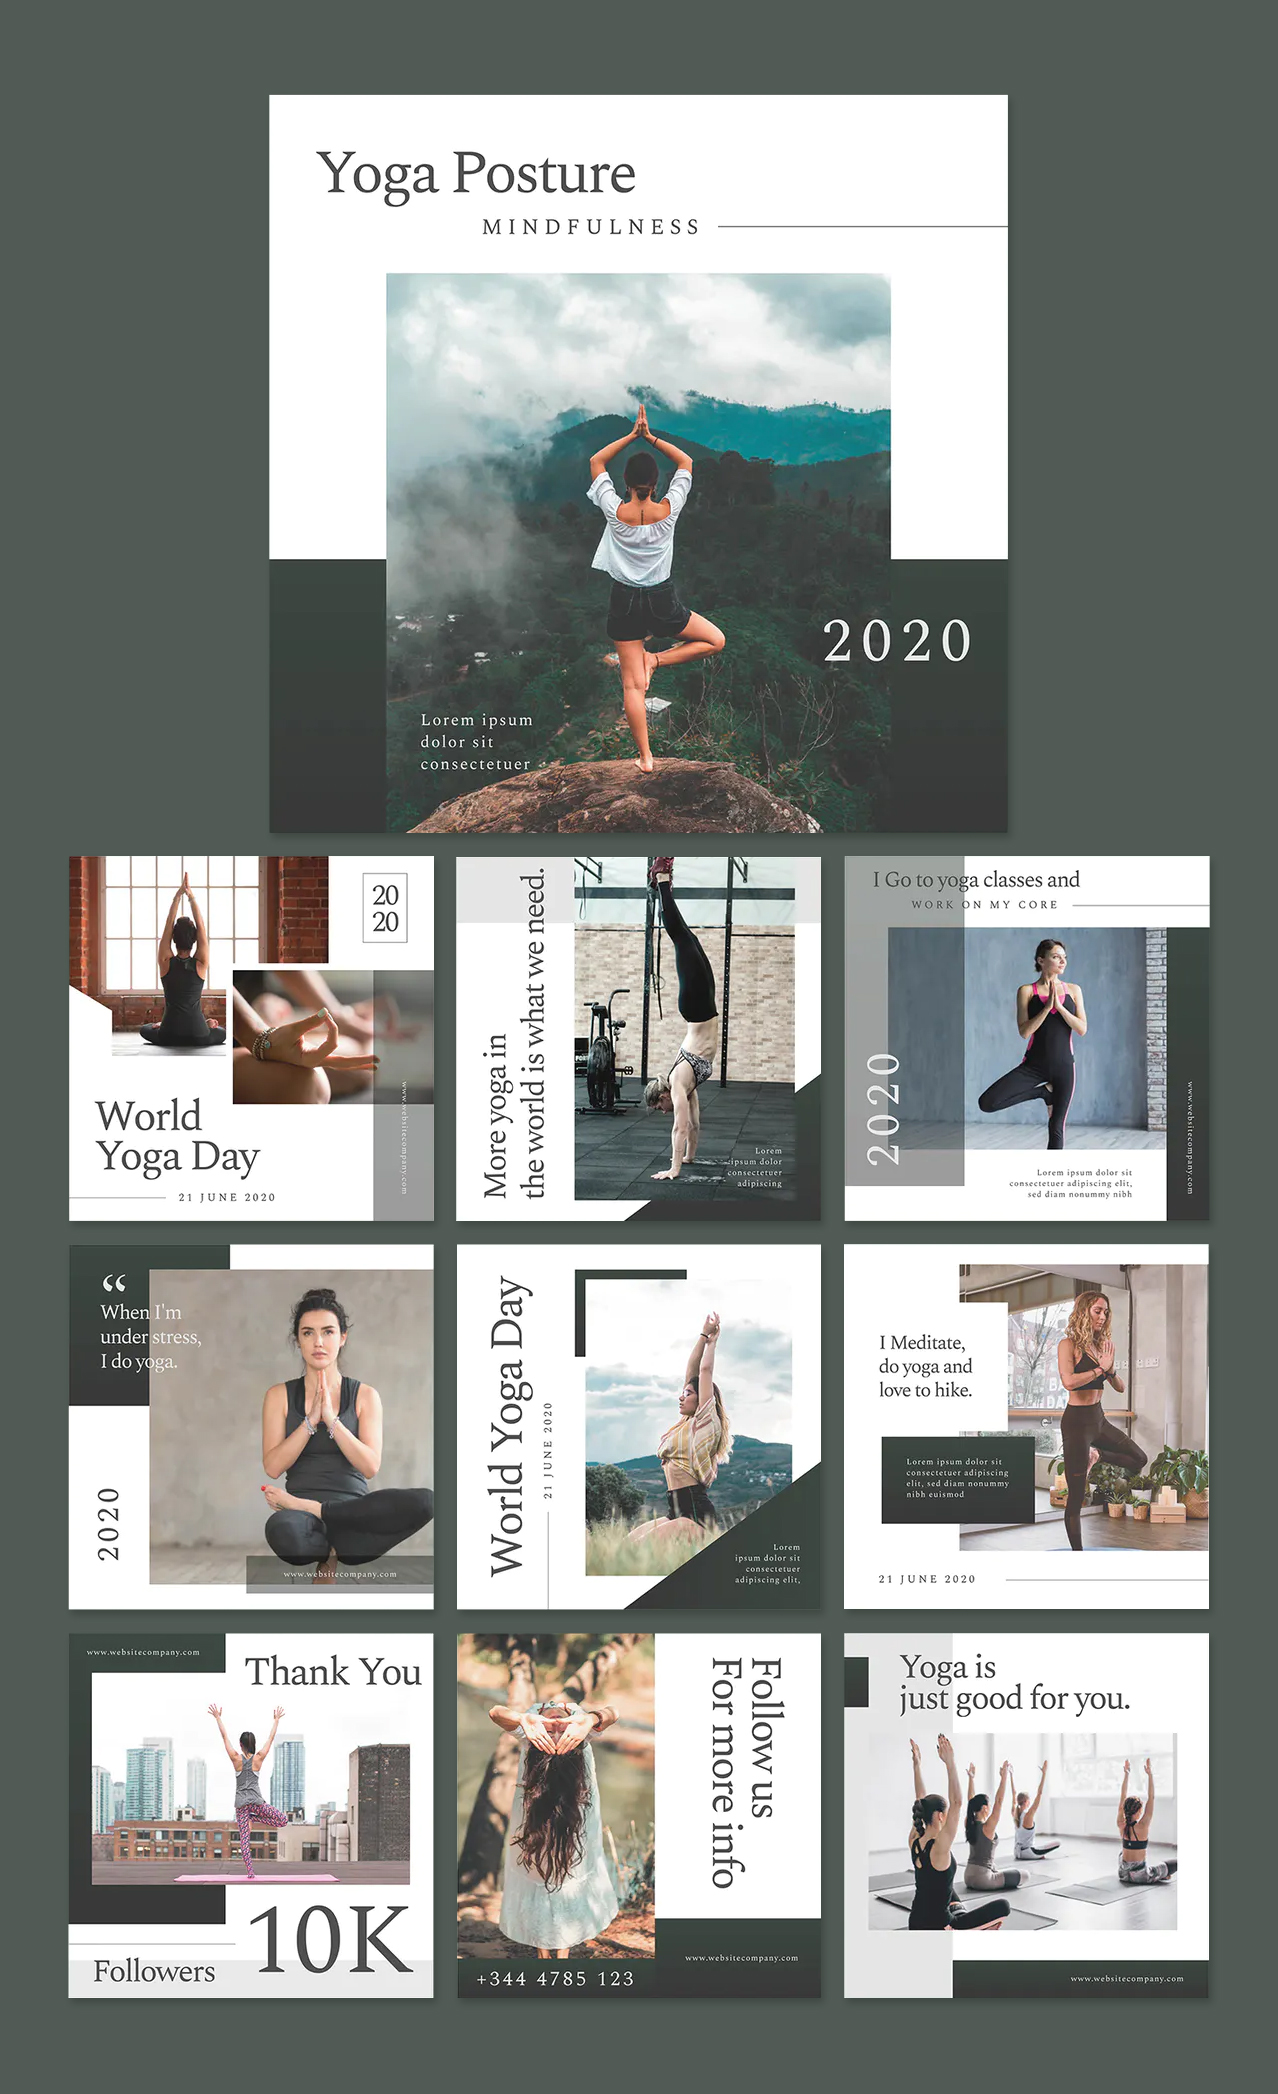 Yoga Studio Social Media Templates